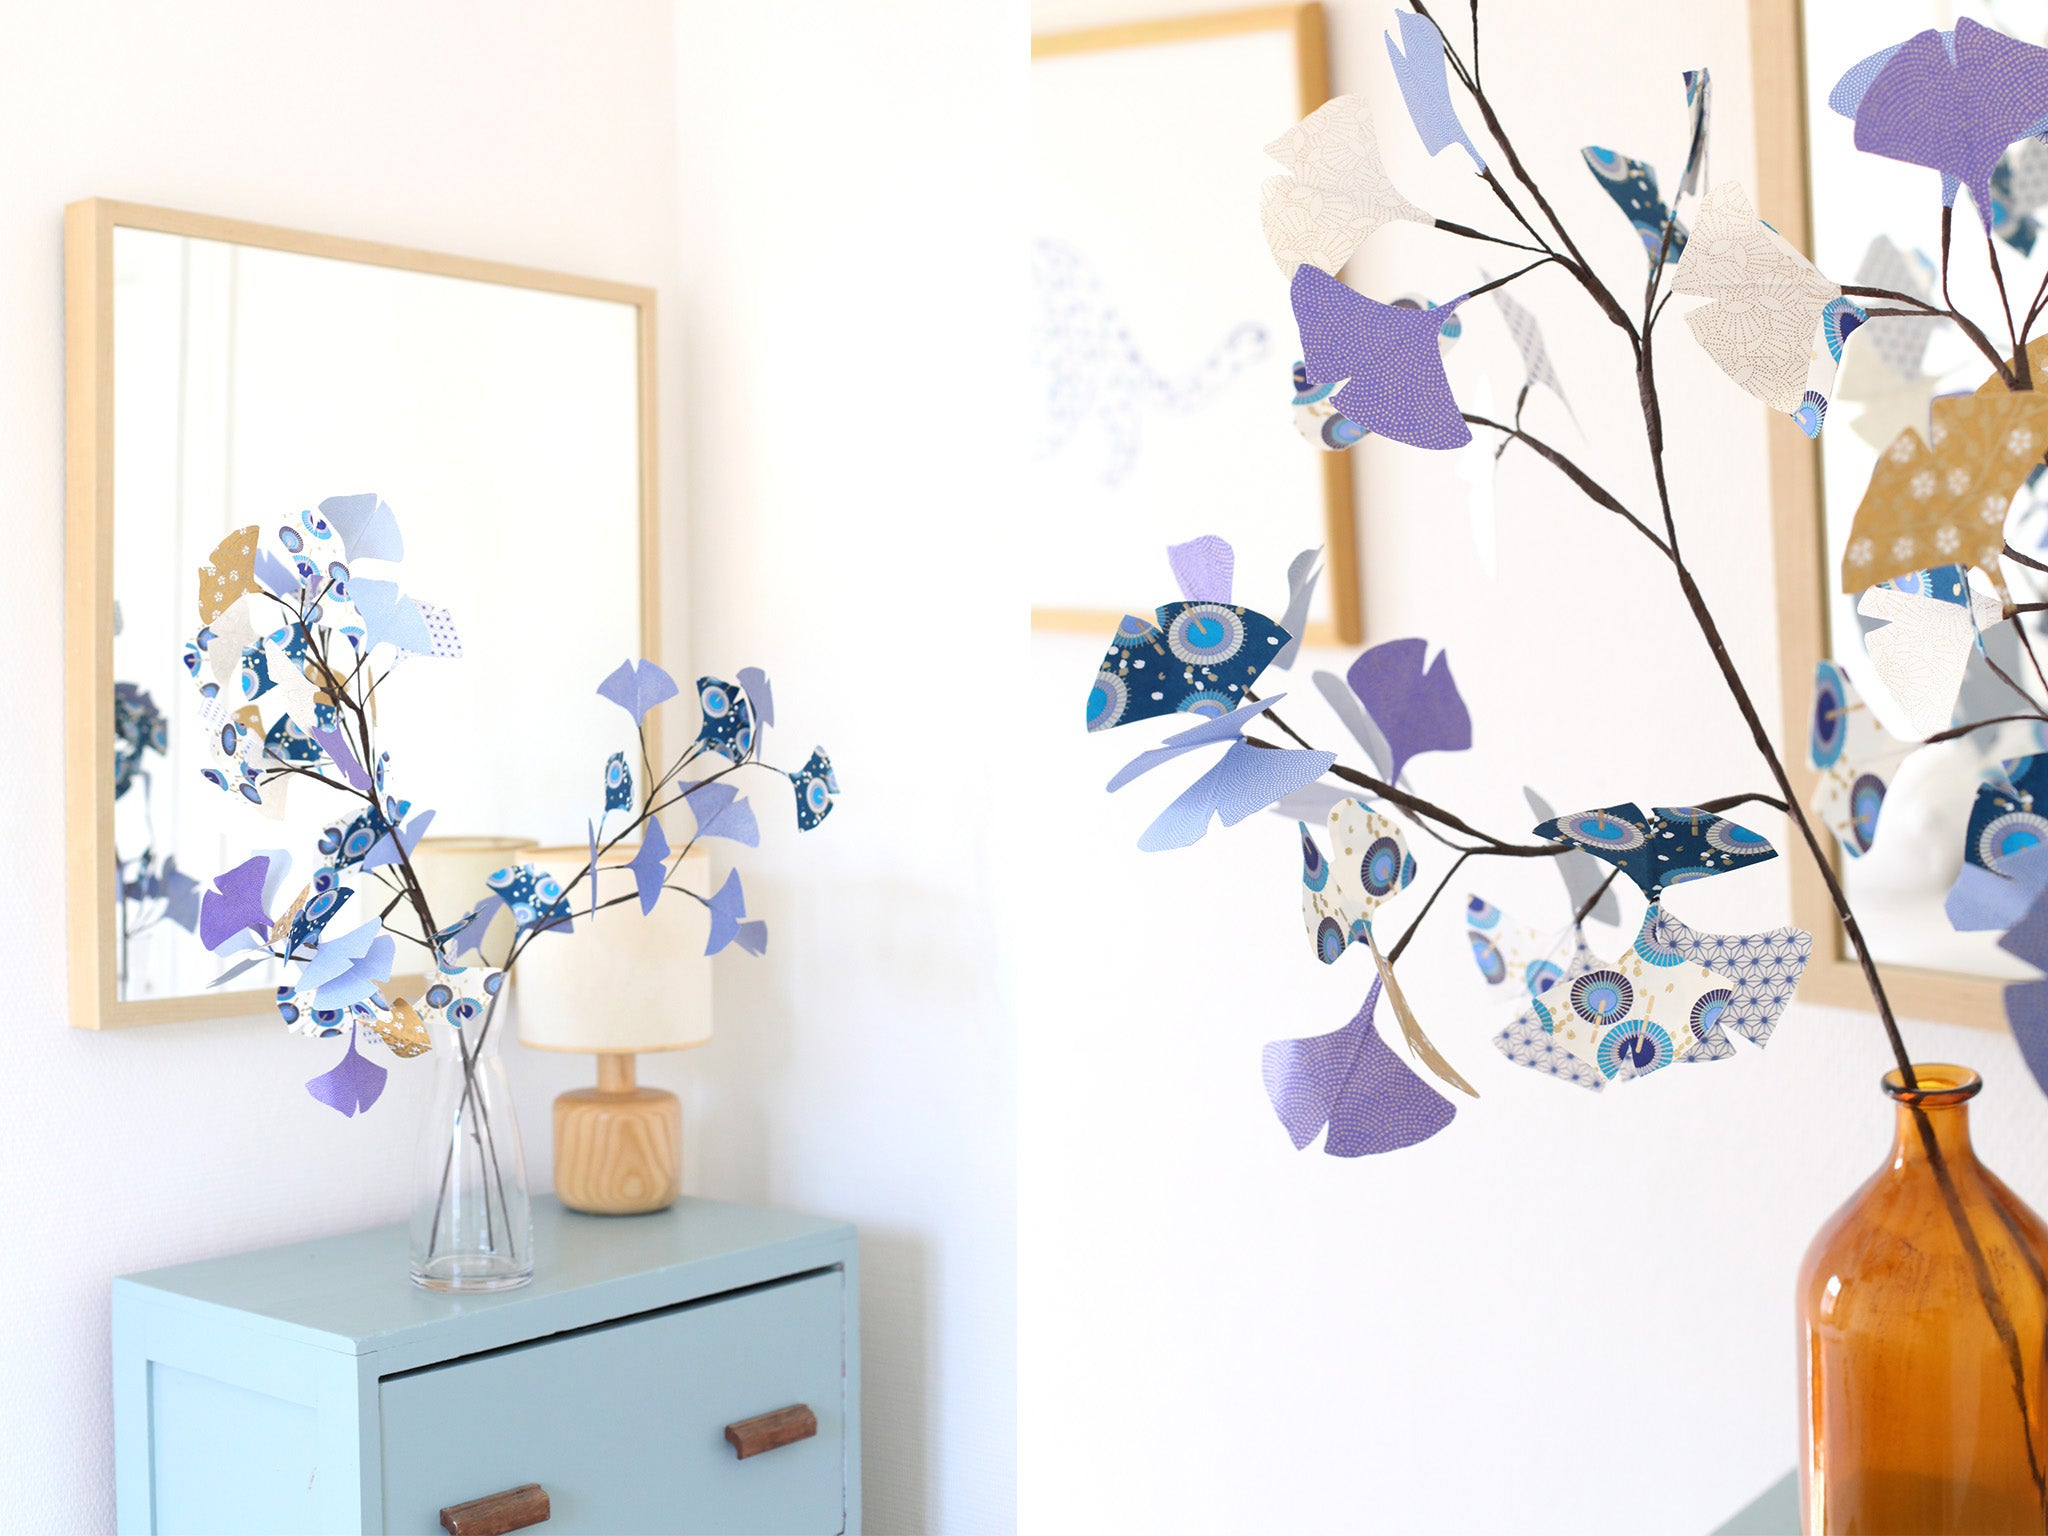 article-blog-tuto-branchages-feuillages-gingko-papier-japonais-ambiance-couleurs-froides-2